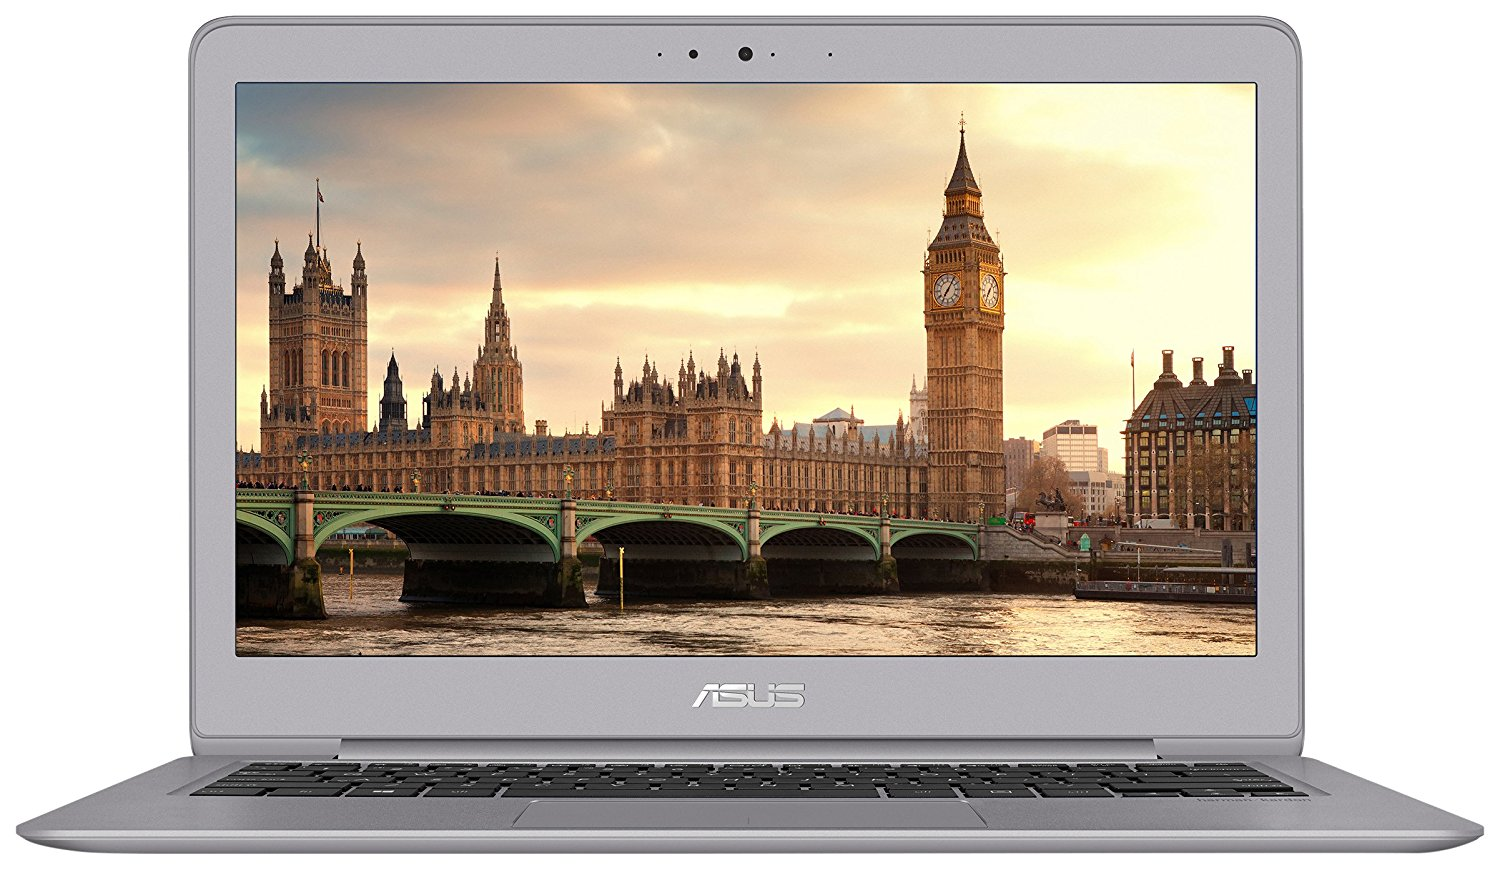 ASUS ZenBook UX330UA - Available with 7th Gen & 8th Gen Intel i5 Processor Options